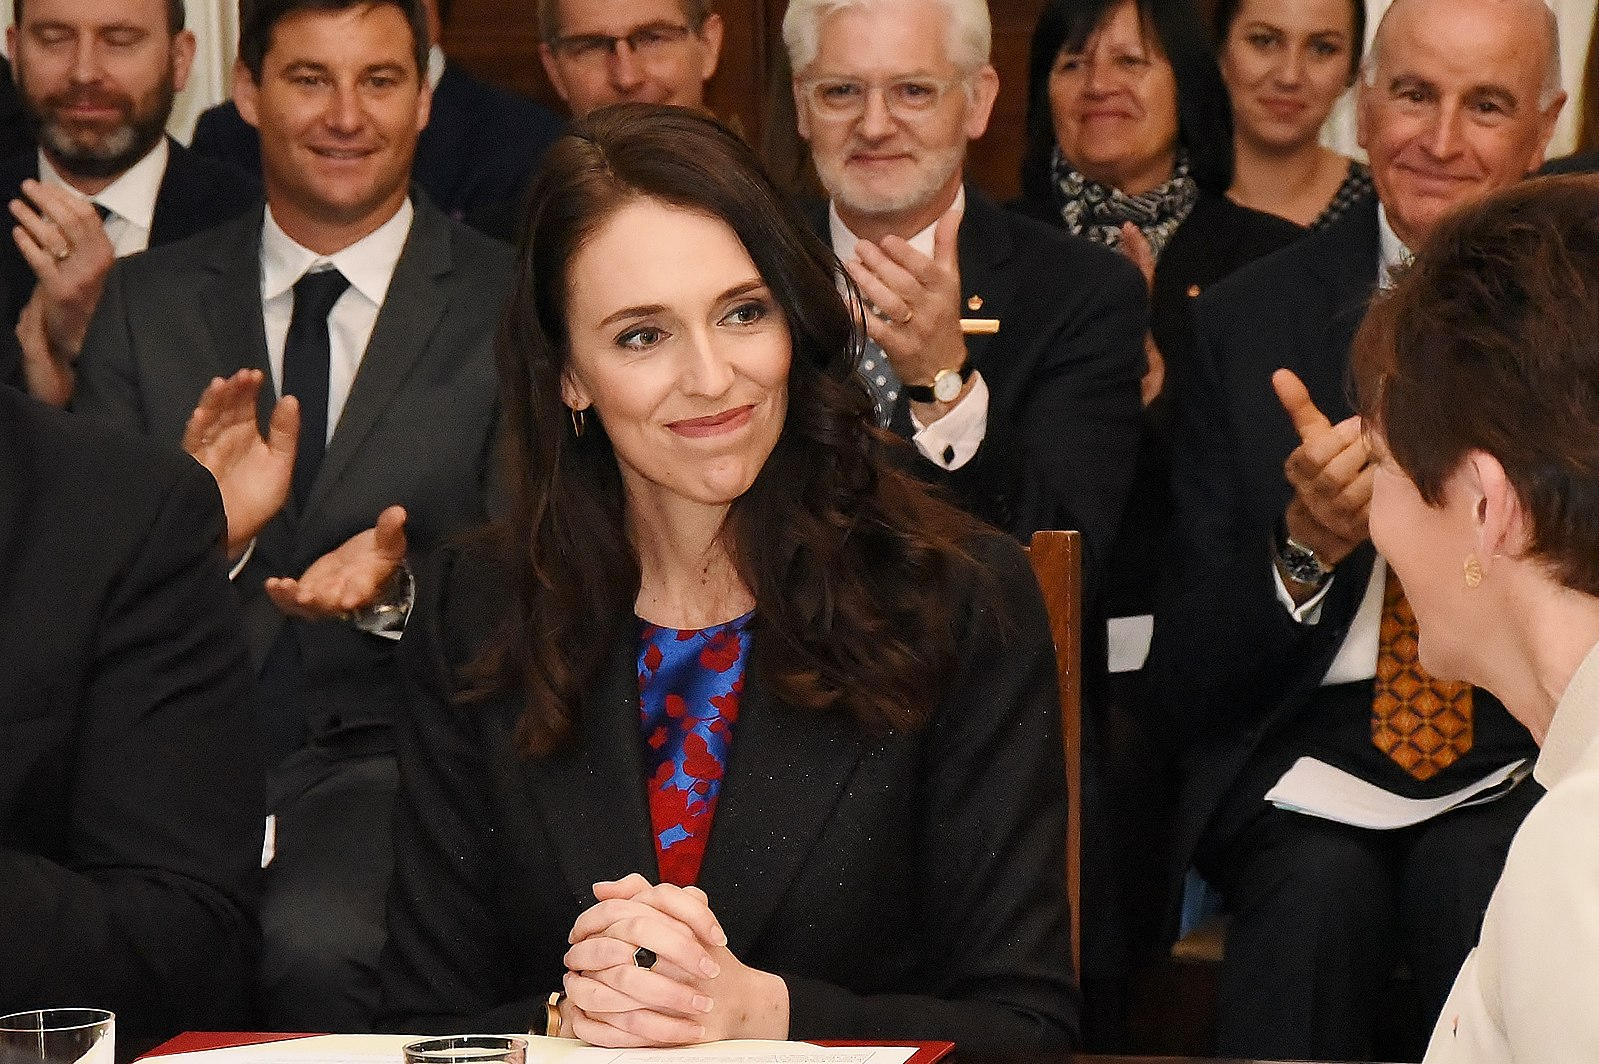 New Zealand Prime Minister Jacinda Ardern has criticised Australia's deportation policies.